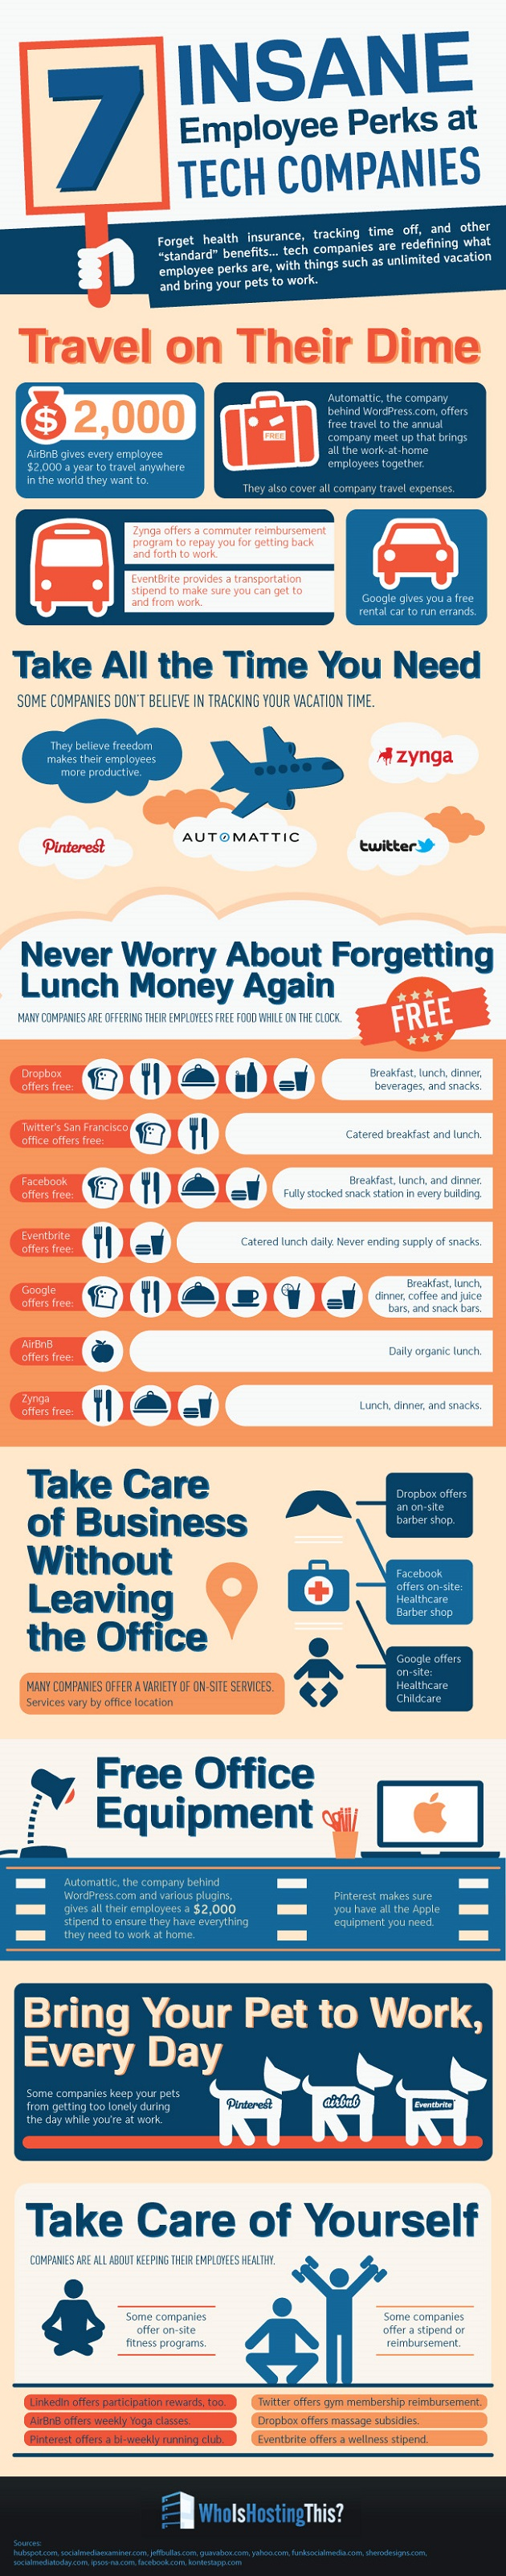 413820-infographic-7-insane-employee-perks-at-tech-companies.jpg